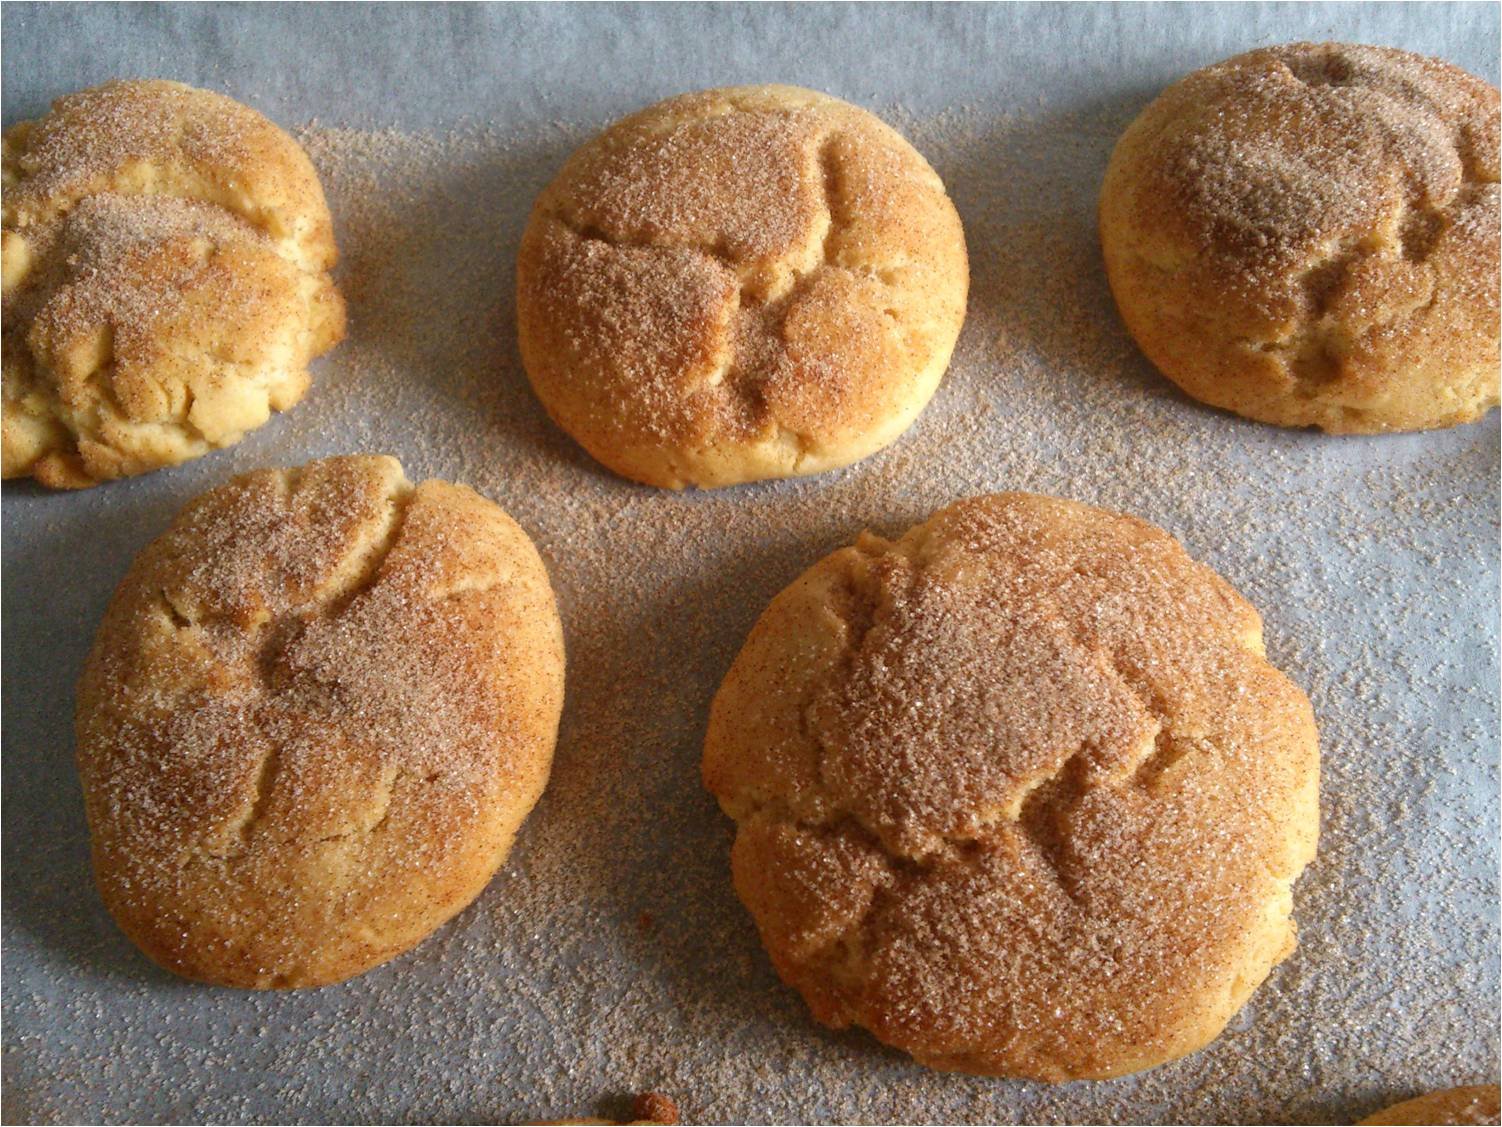 of sugar and 2 teaspoons of cinnamon together than roll each biscuit ...